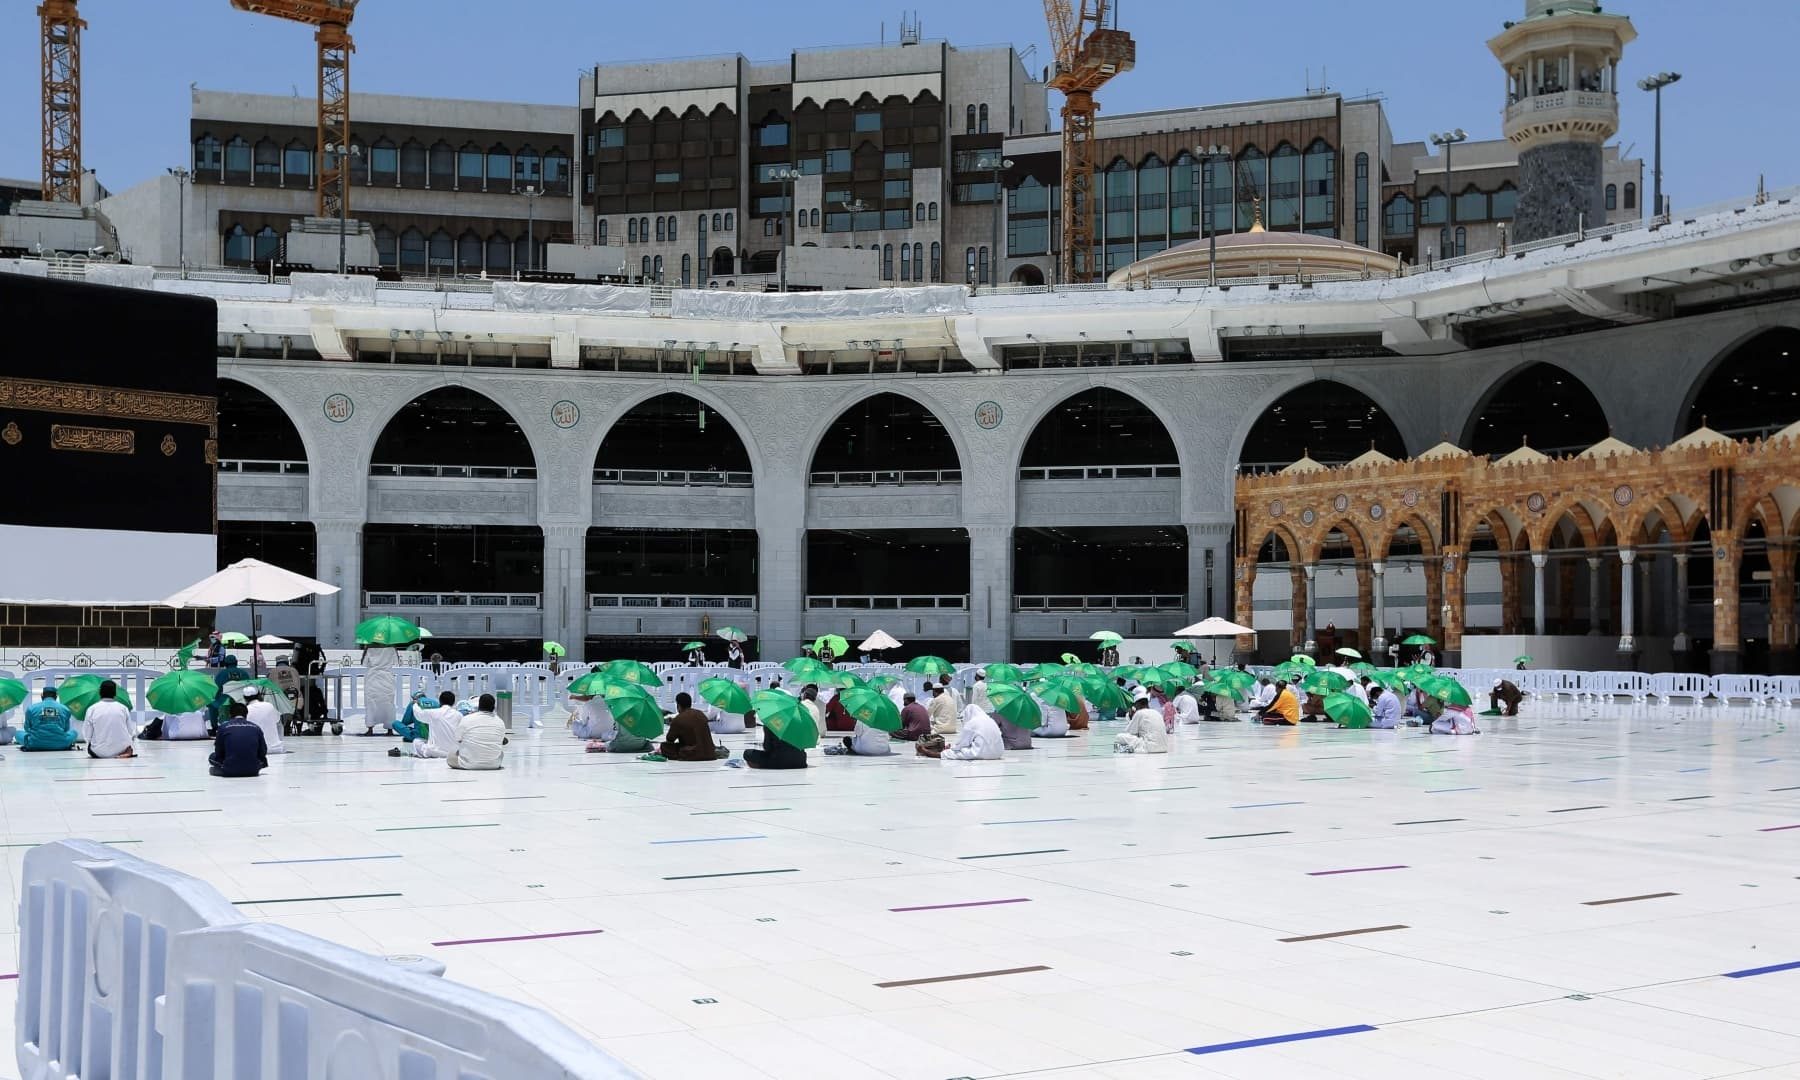 Members of Saudi security forces and staff perform the Friday prayer by the Kaaba at the Grand Mosque in the holy city of Makkah, Saudi Arabia, July 16, 2021. — AFP